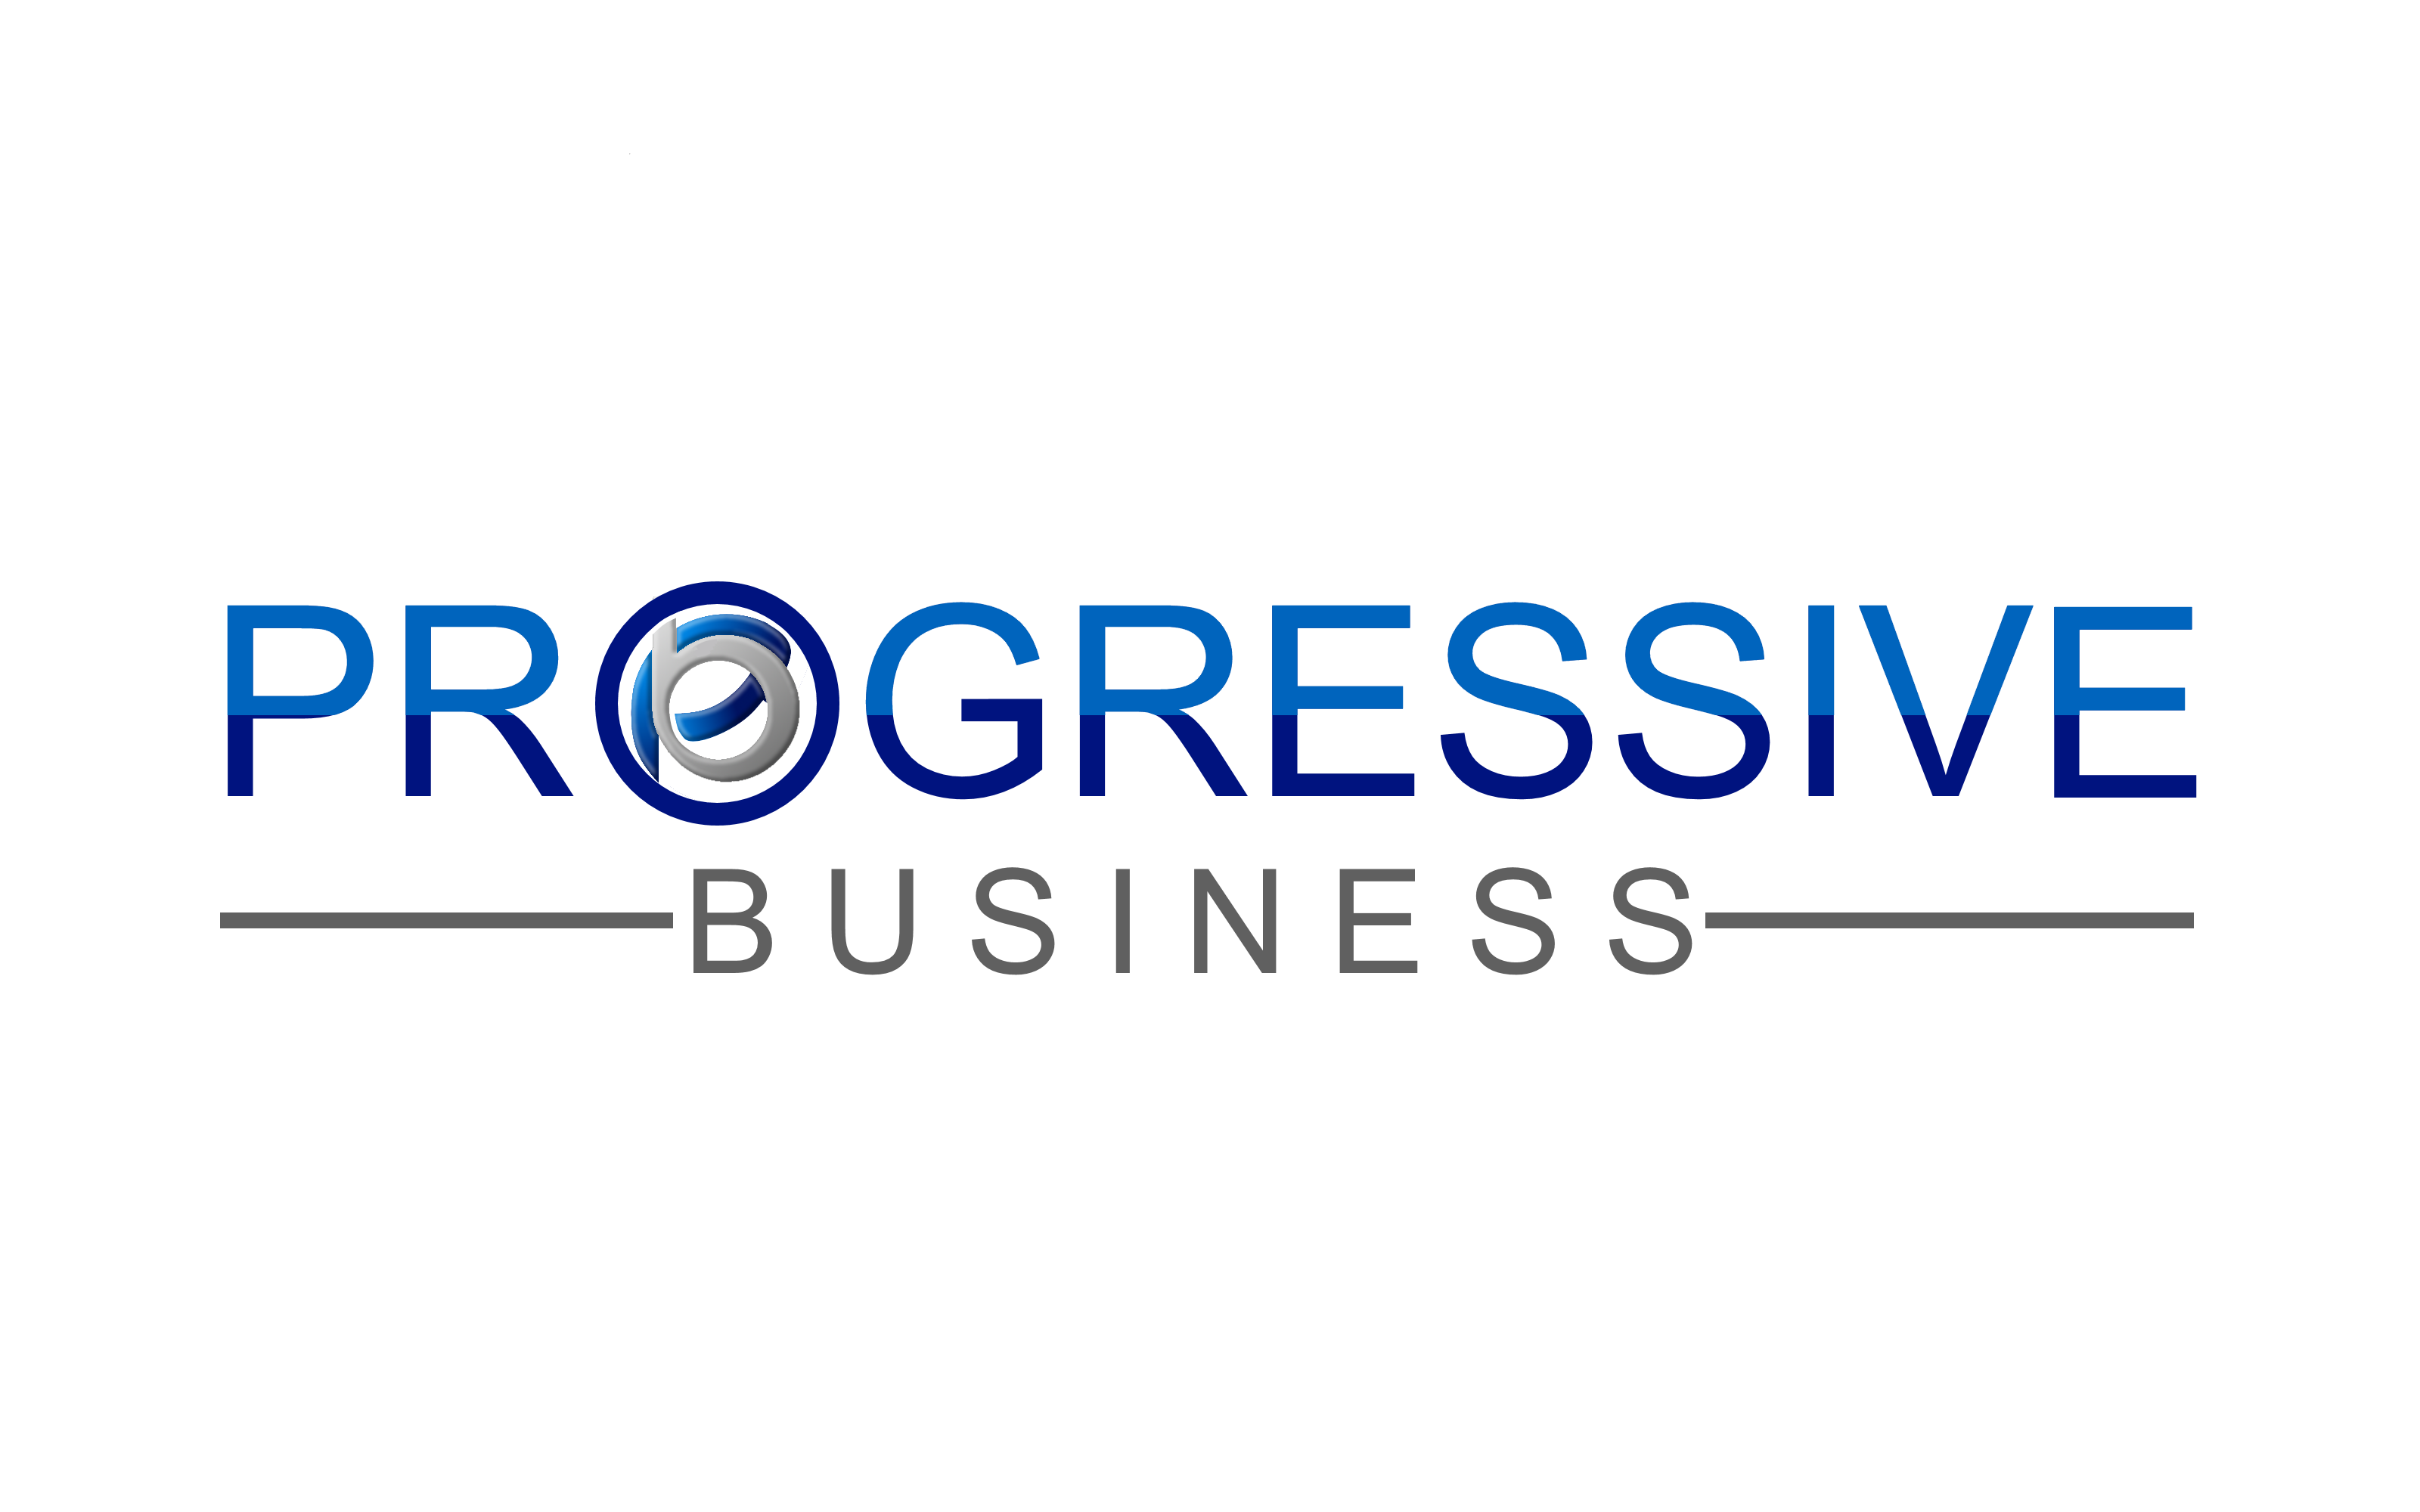 Logo Design by Roberto Bassi - Entry No. 102 in the Logo Design Contest Captivating Logo Design for Progressive Business.